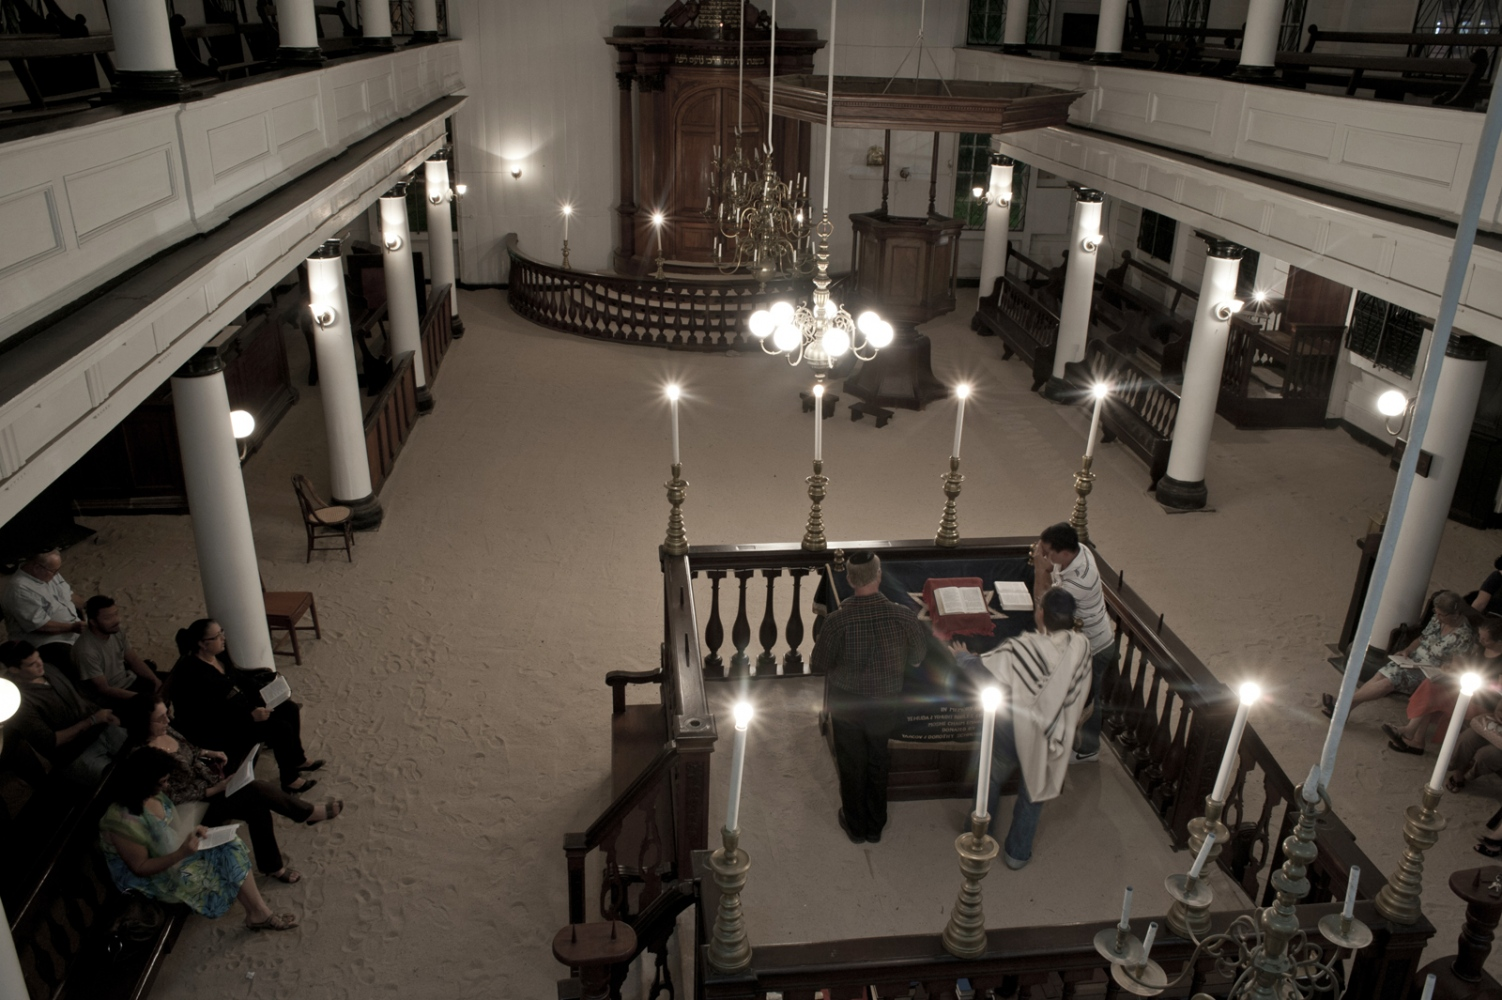 Sabbath evening services at the synagogue. It is one of five functioning synagogues in the world with sand floors, a tradition dating back to the 17th century.